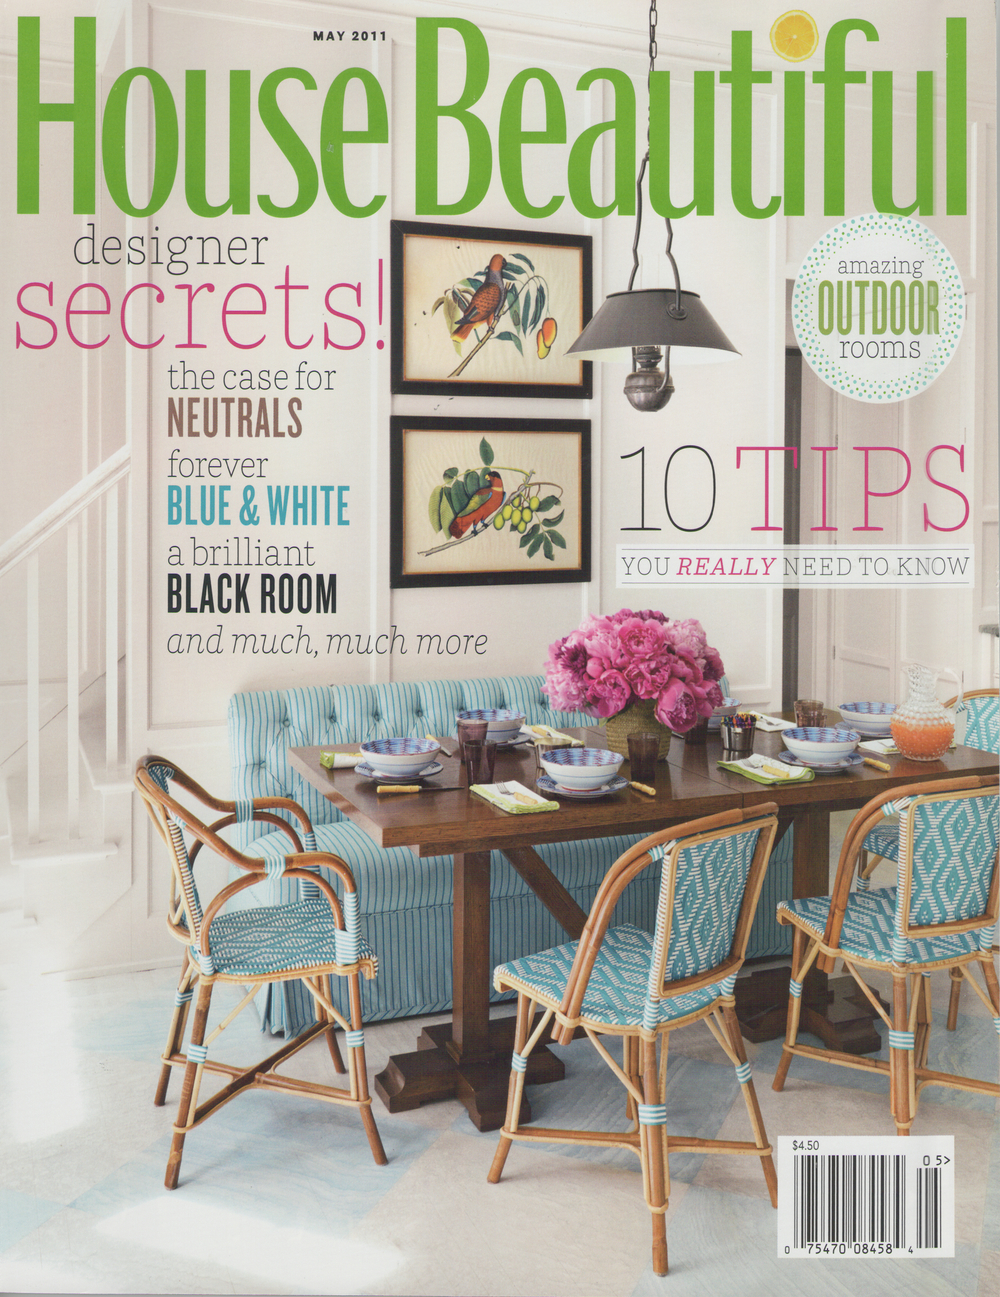 House Beautiful Cover2011 copy 2.jpg